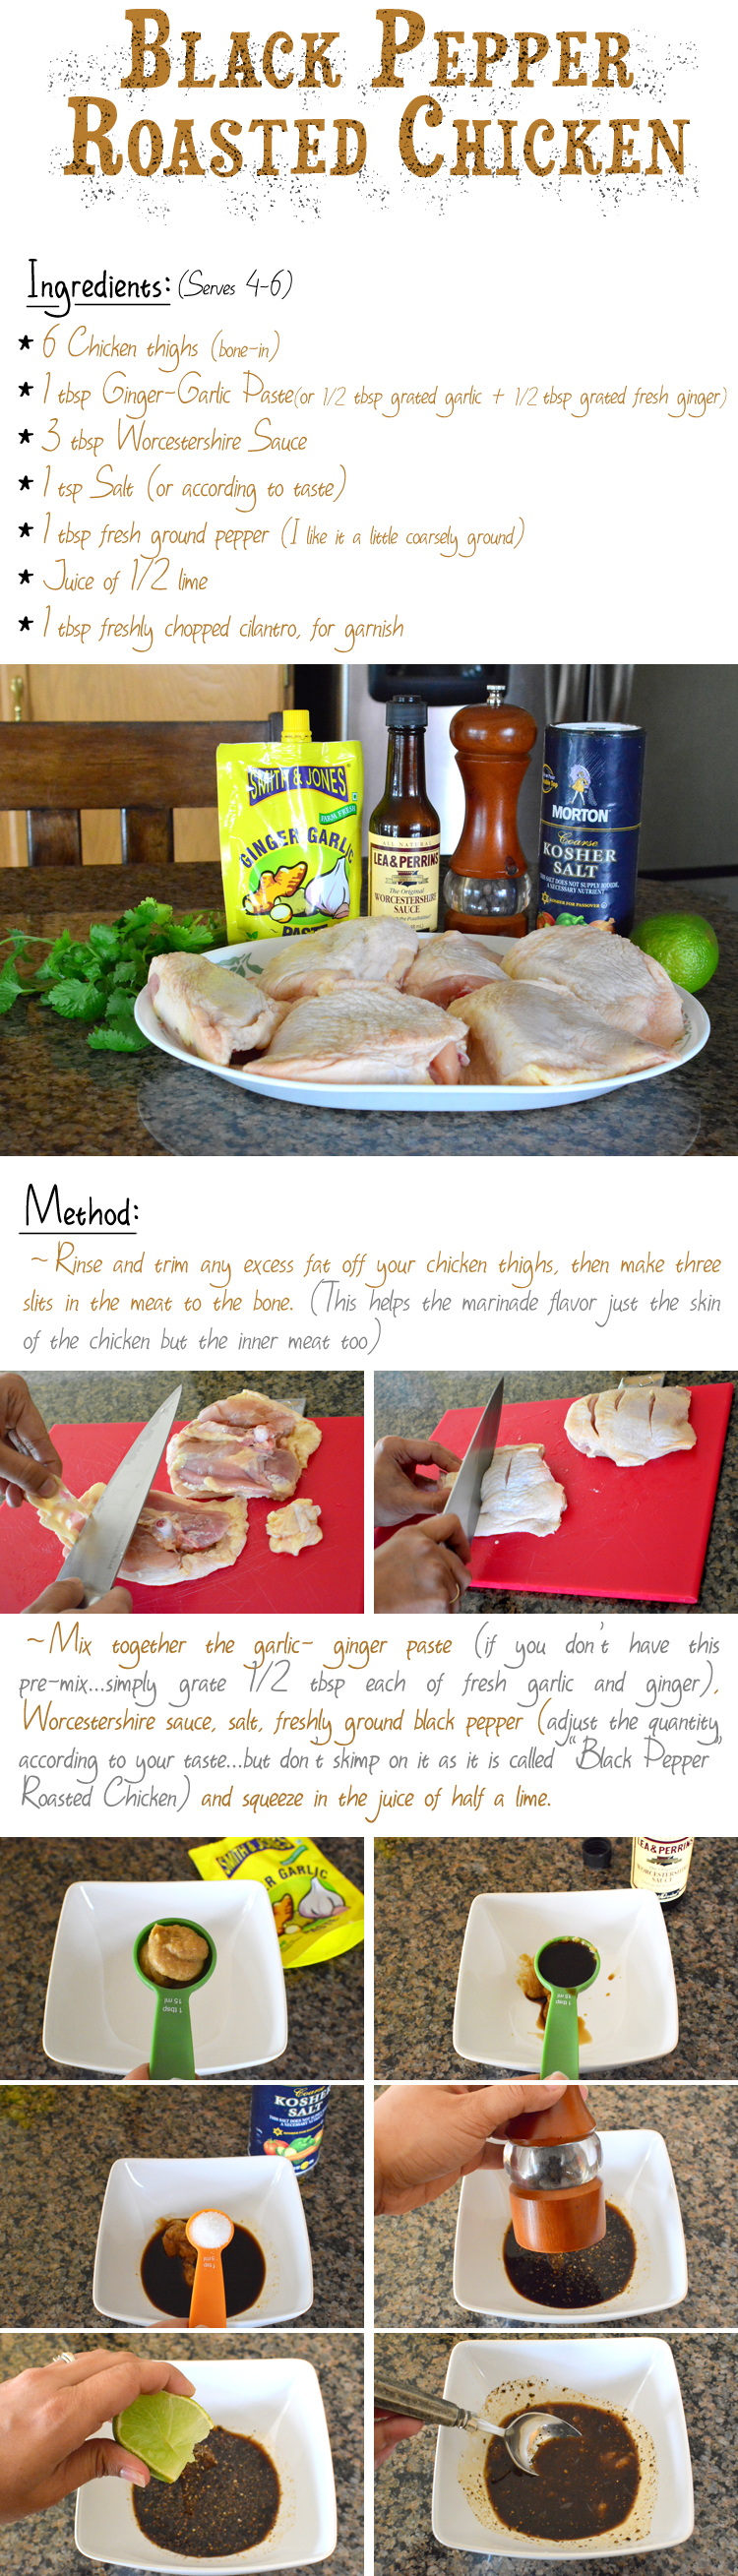 Black Pepper Roasted Chicken Recipe- PictureTheRecipe com (Part1)